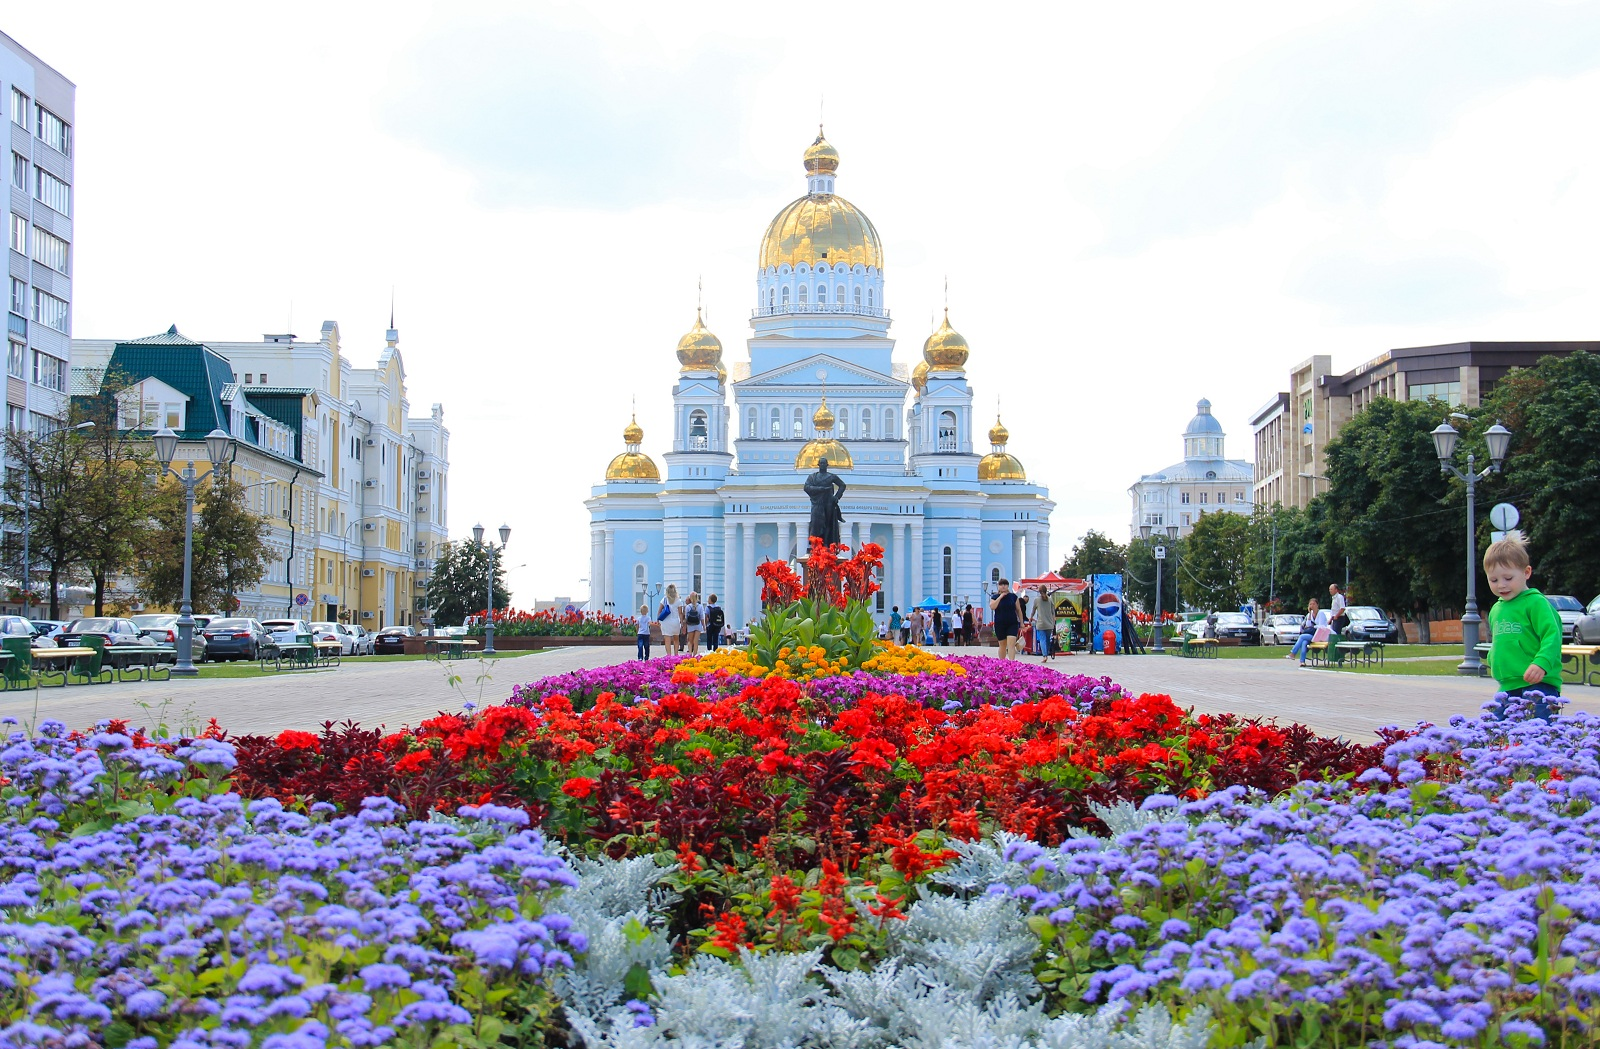 The_Cathedral_of_the_Holy_and_Righteous_Warrior_Feodor_Ushakov_Saransk's_major_architectural_landmark_has_a_height_of_63_meters_A_vista_point_on_the_cathedral's_ grounds_offers_a_view_of_the_whole_city.jpg